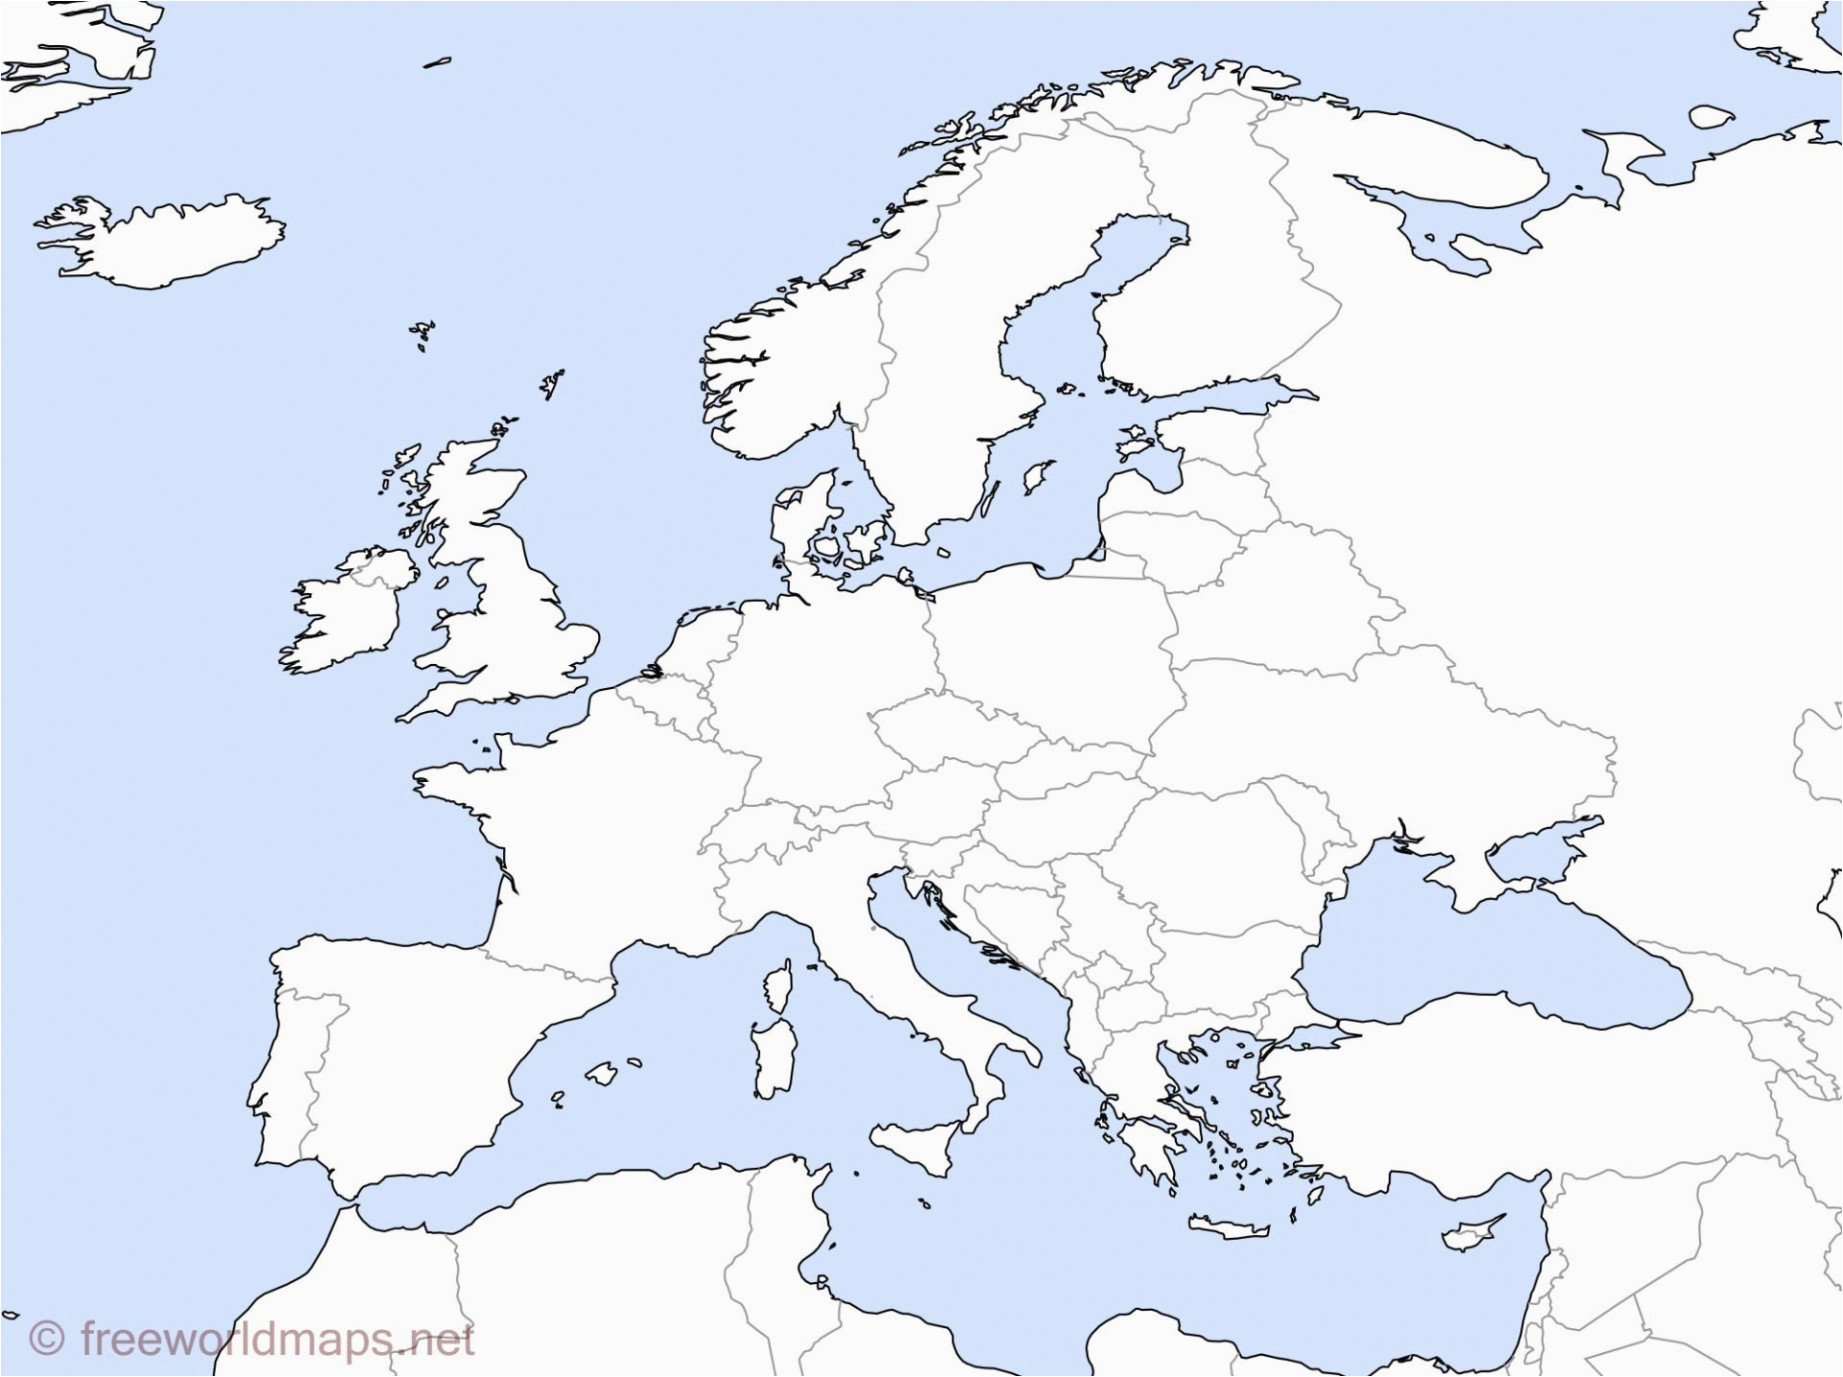 Map Of Europe Fill In Unlabeled Map Of Europe Climatejourney org